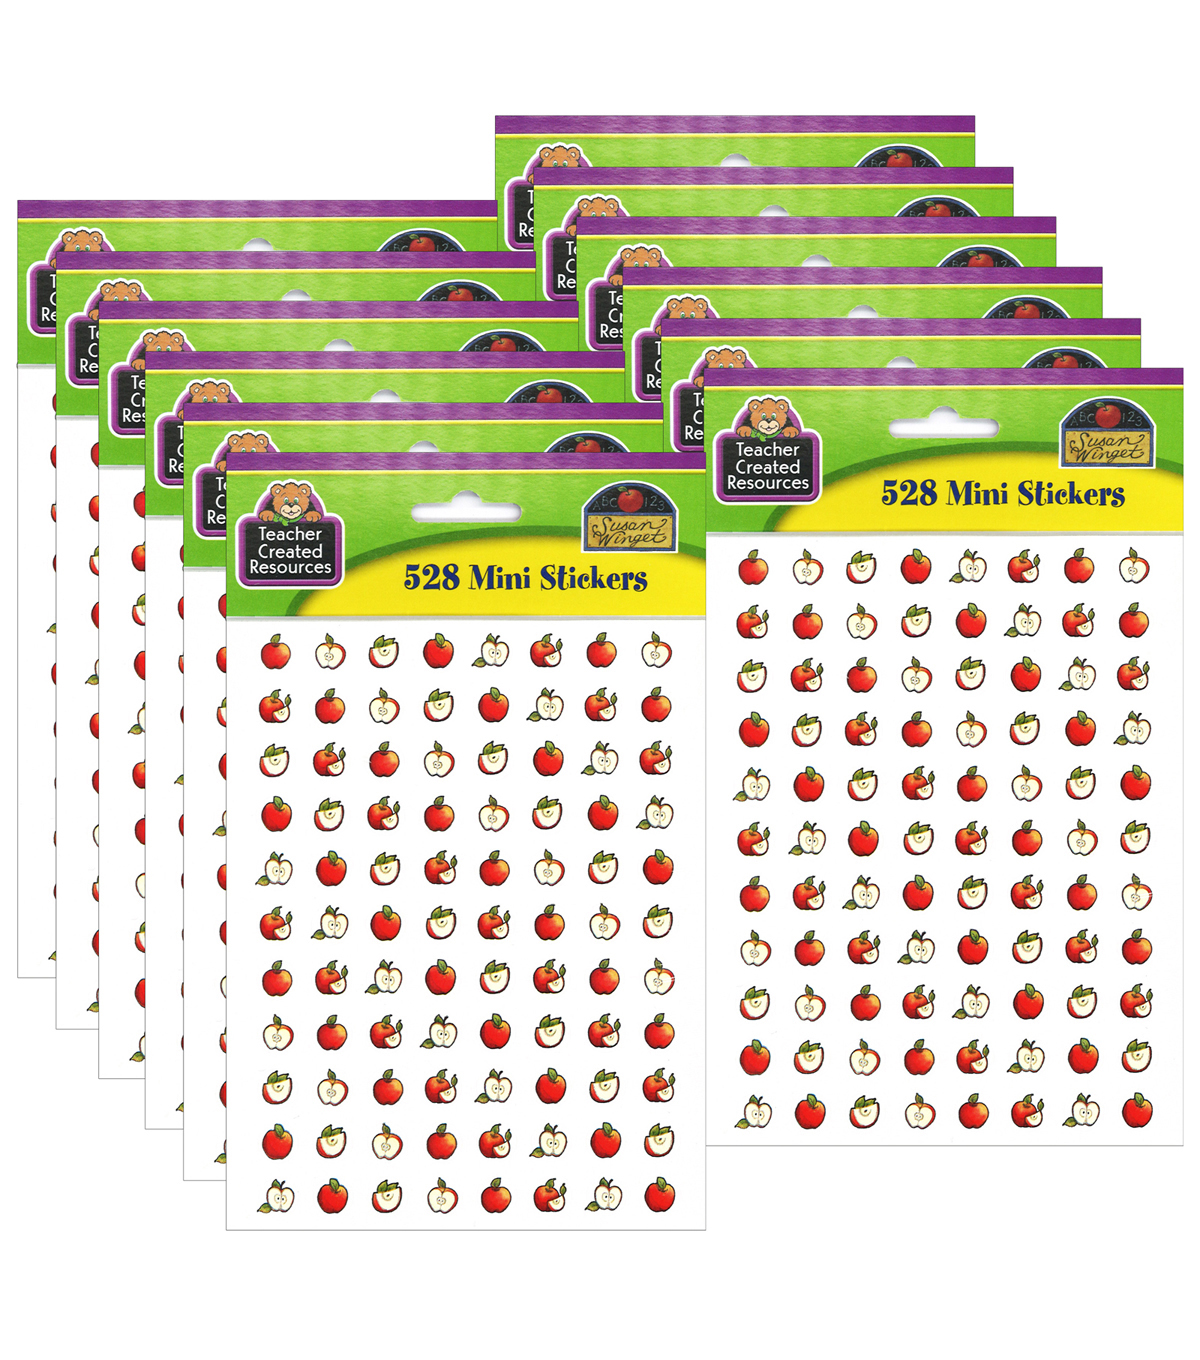 Teacher Created Resources Apples Mini Stickers 528 Per Pack, 12 Packs